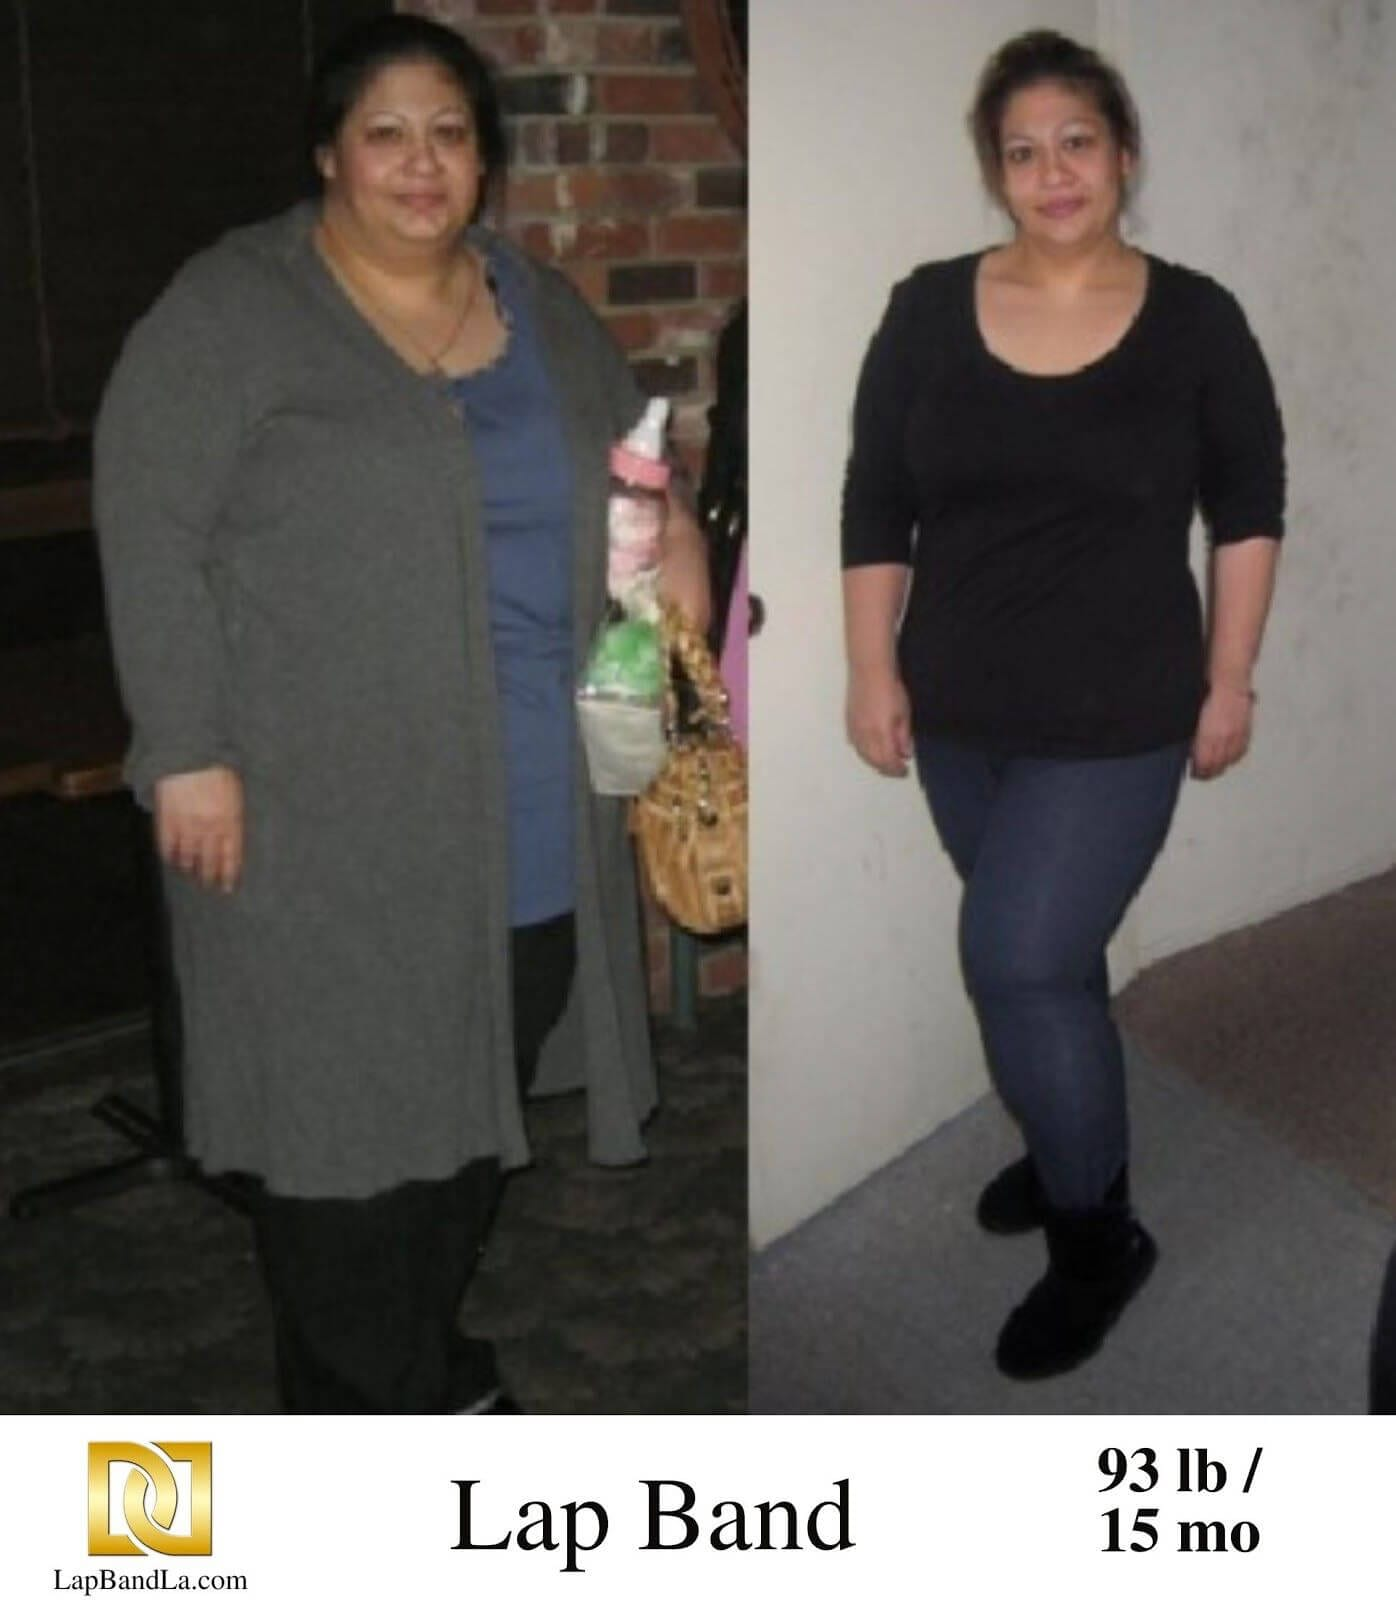 &Amp;Lt;H1 Class=&Amp;Quot;Hide_09&Amp;Quot;&Amp;Gt;Bariatric Surgery &Amp;Lt;Br&Amp;Gt;Before And After - Anita S.&Amp;Lt;/H1&Amp;Gt;   Success_Storie   The Weight Loss Surgery Center Of Los Angeles   Dr. David Davtyan